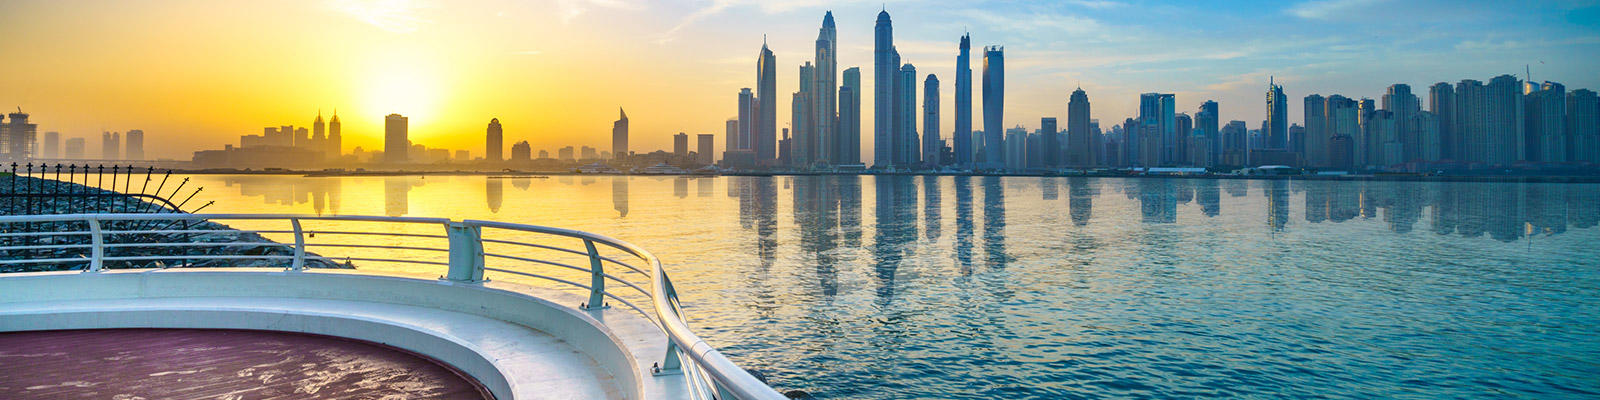 treat-your-family-to-a-dazzling-dubai-cruise-blog